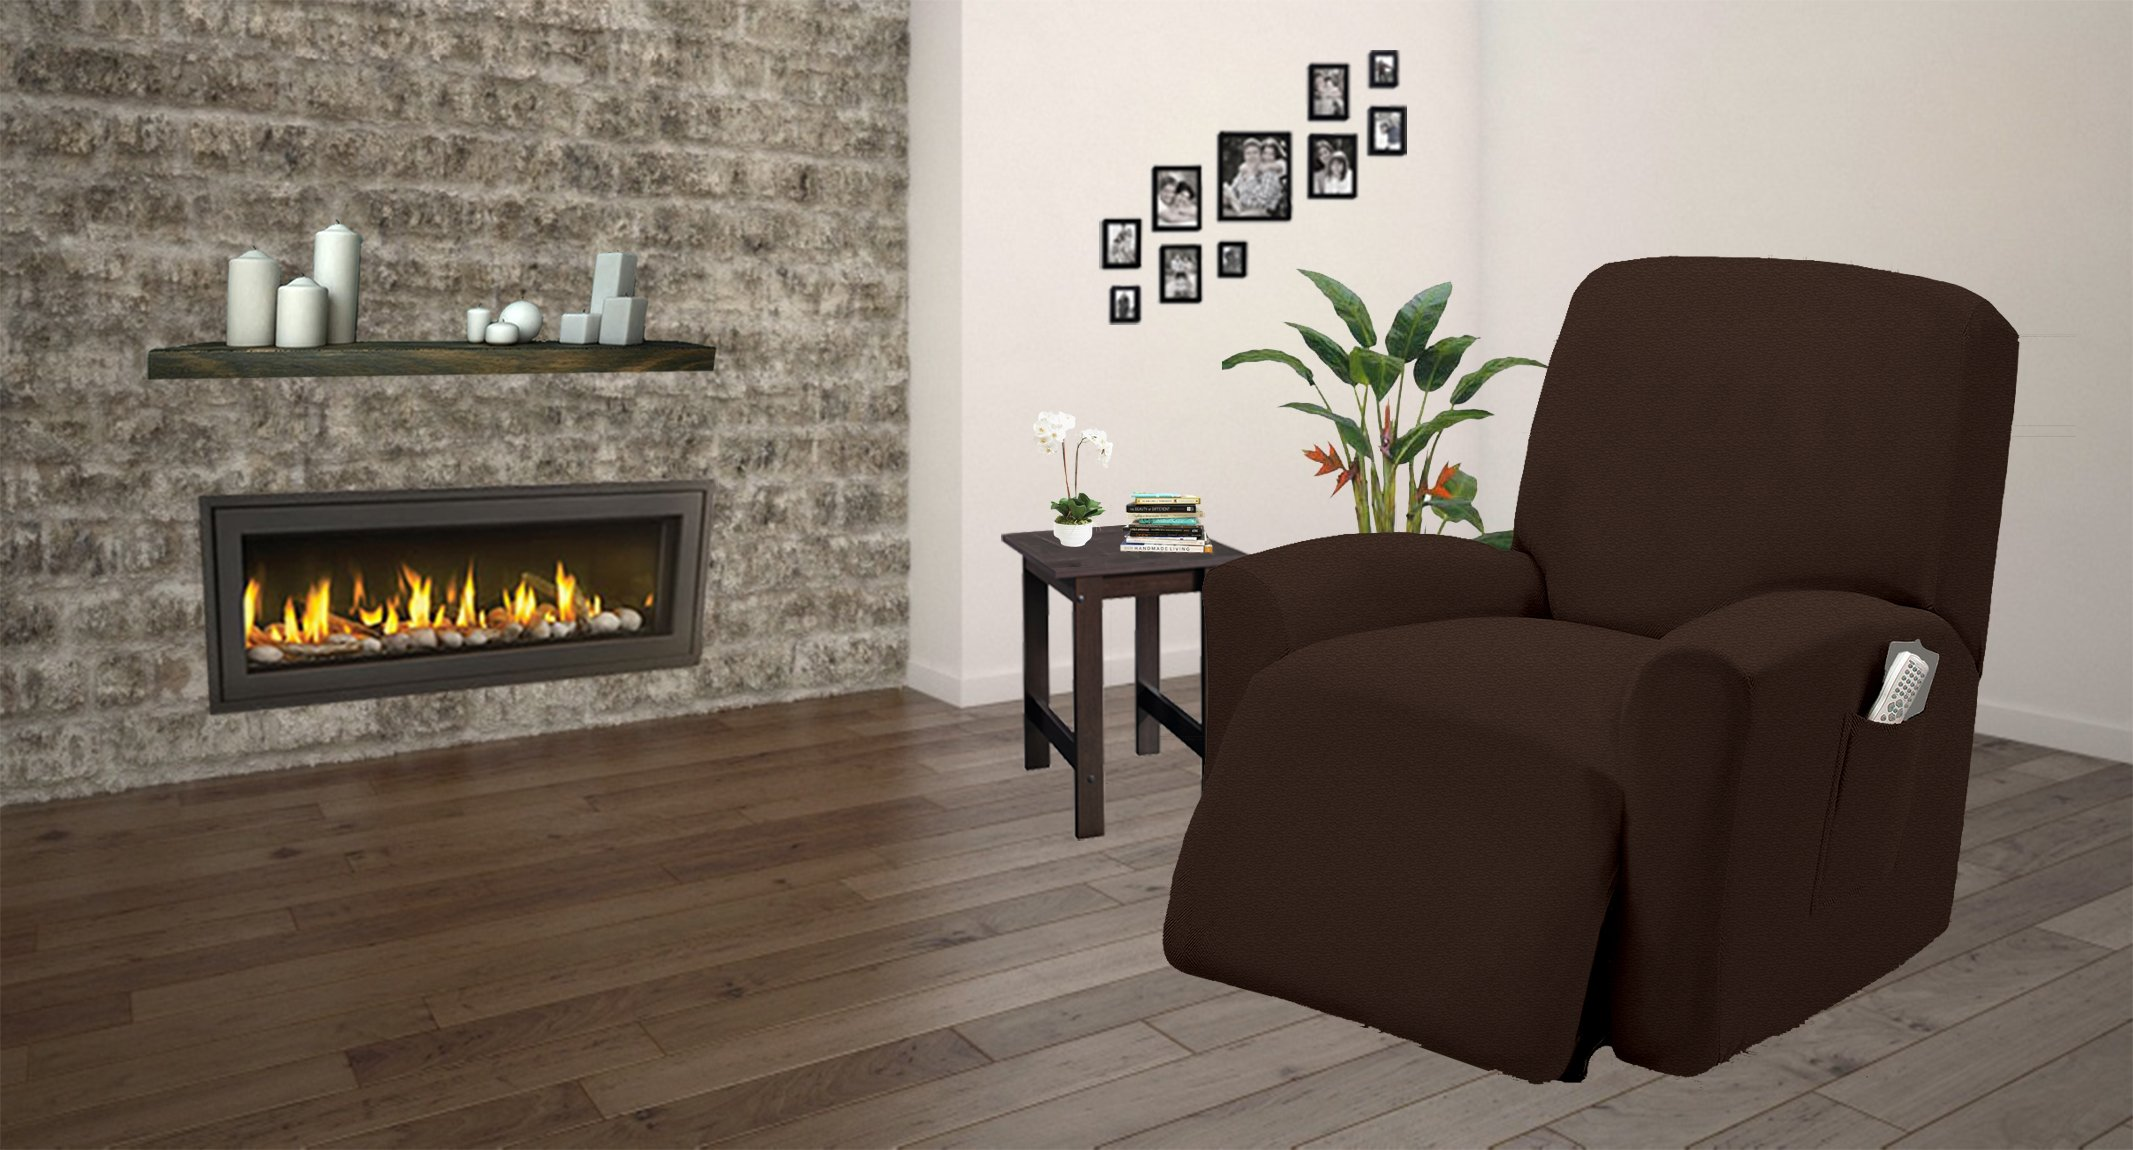 One piece Stretch Recliner Chair Furniture Slipcovers with Remote Pocket Fit most Recliner Chairs (Chocolate)